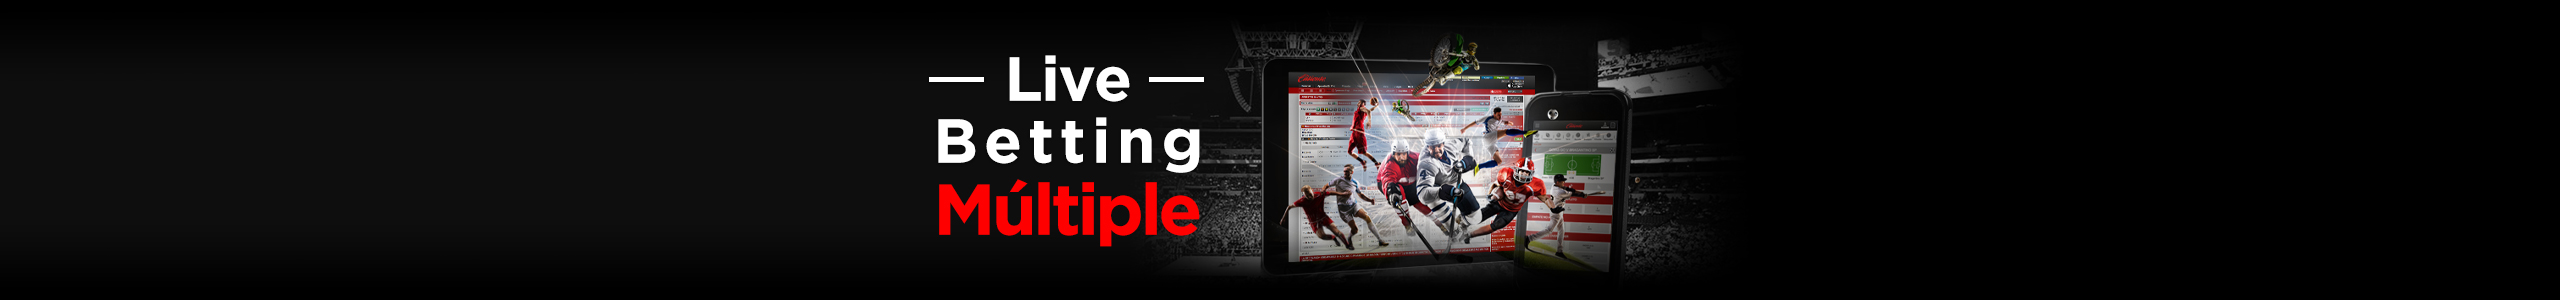 Live Betting Múltiple